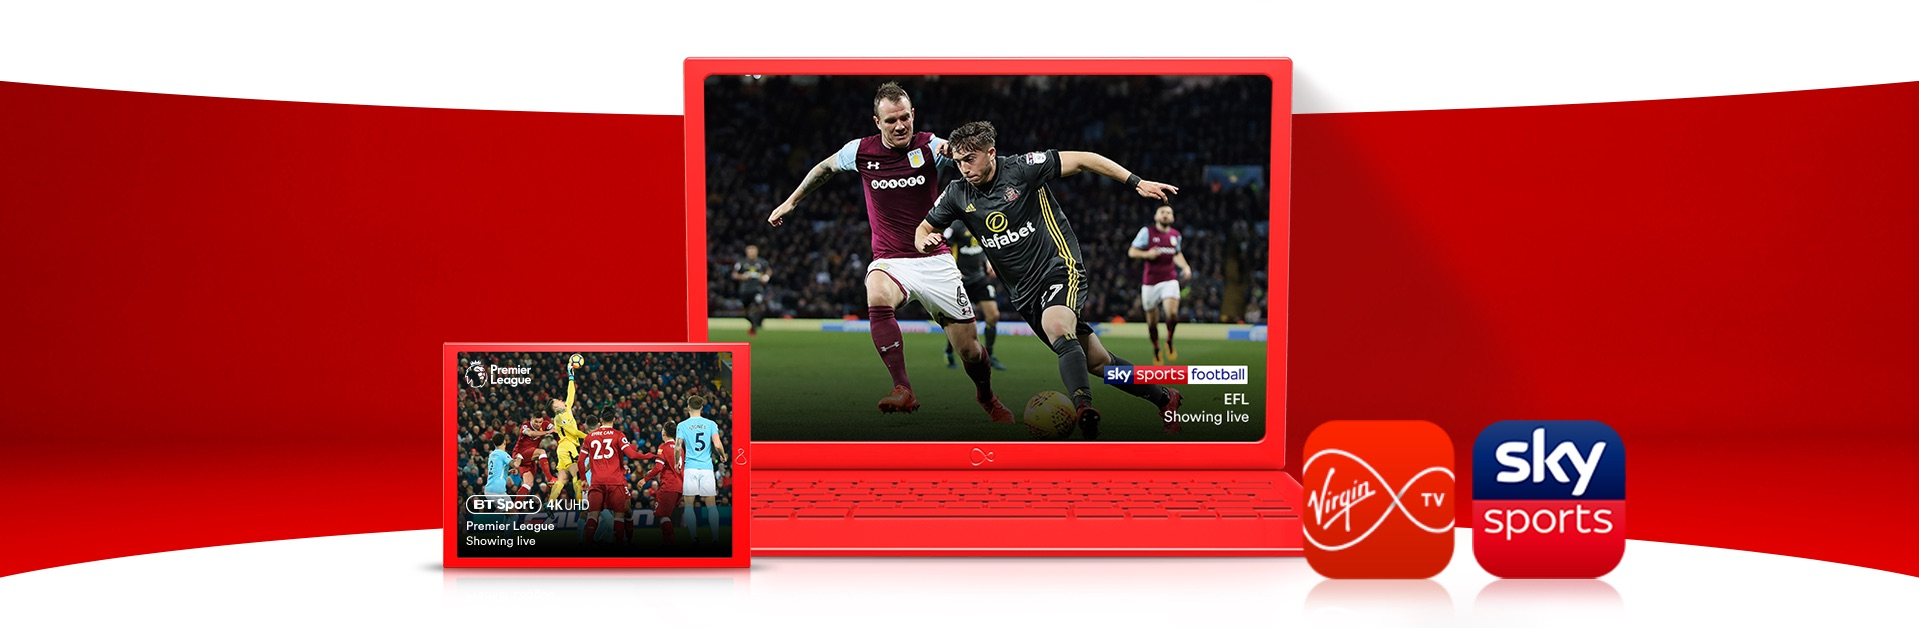 Live football fixtures on Sky Sports and BT Sports | Virgin Media